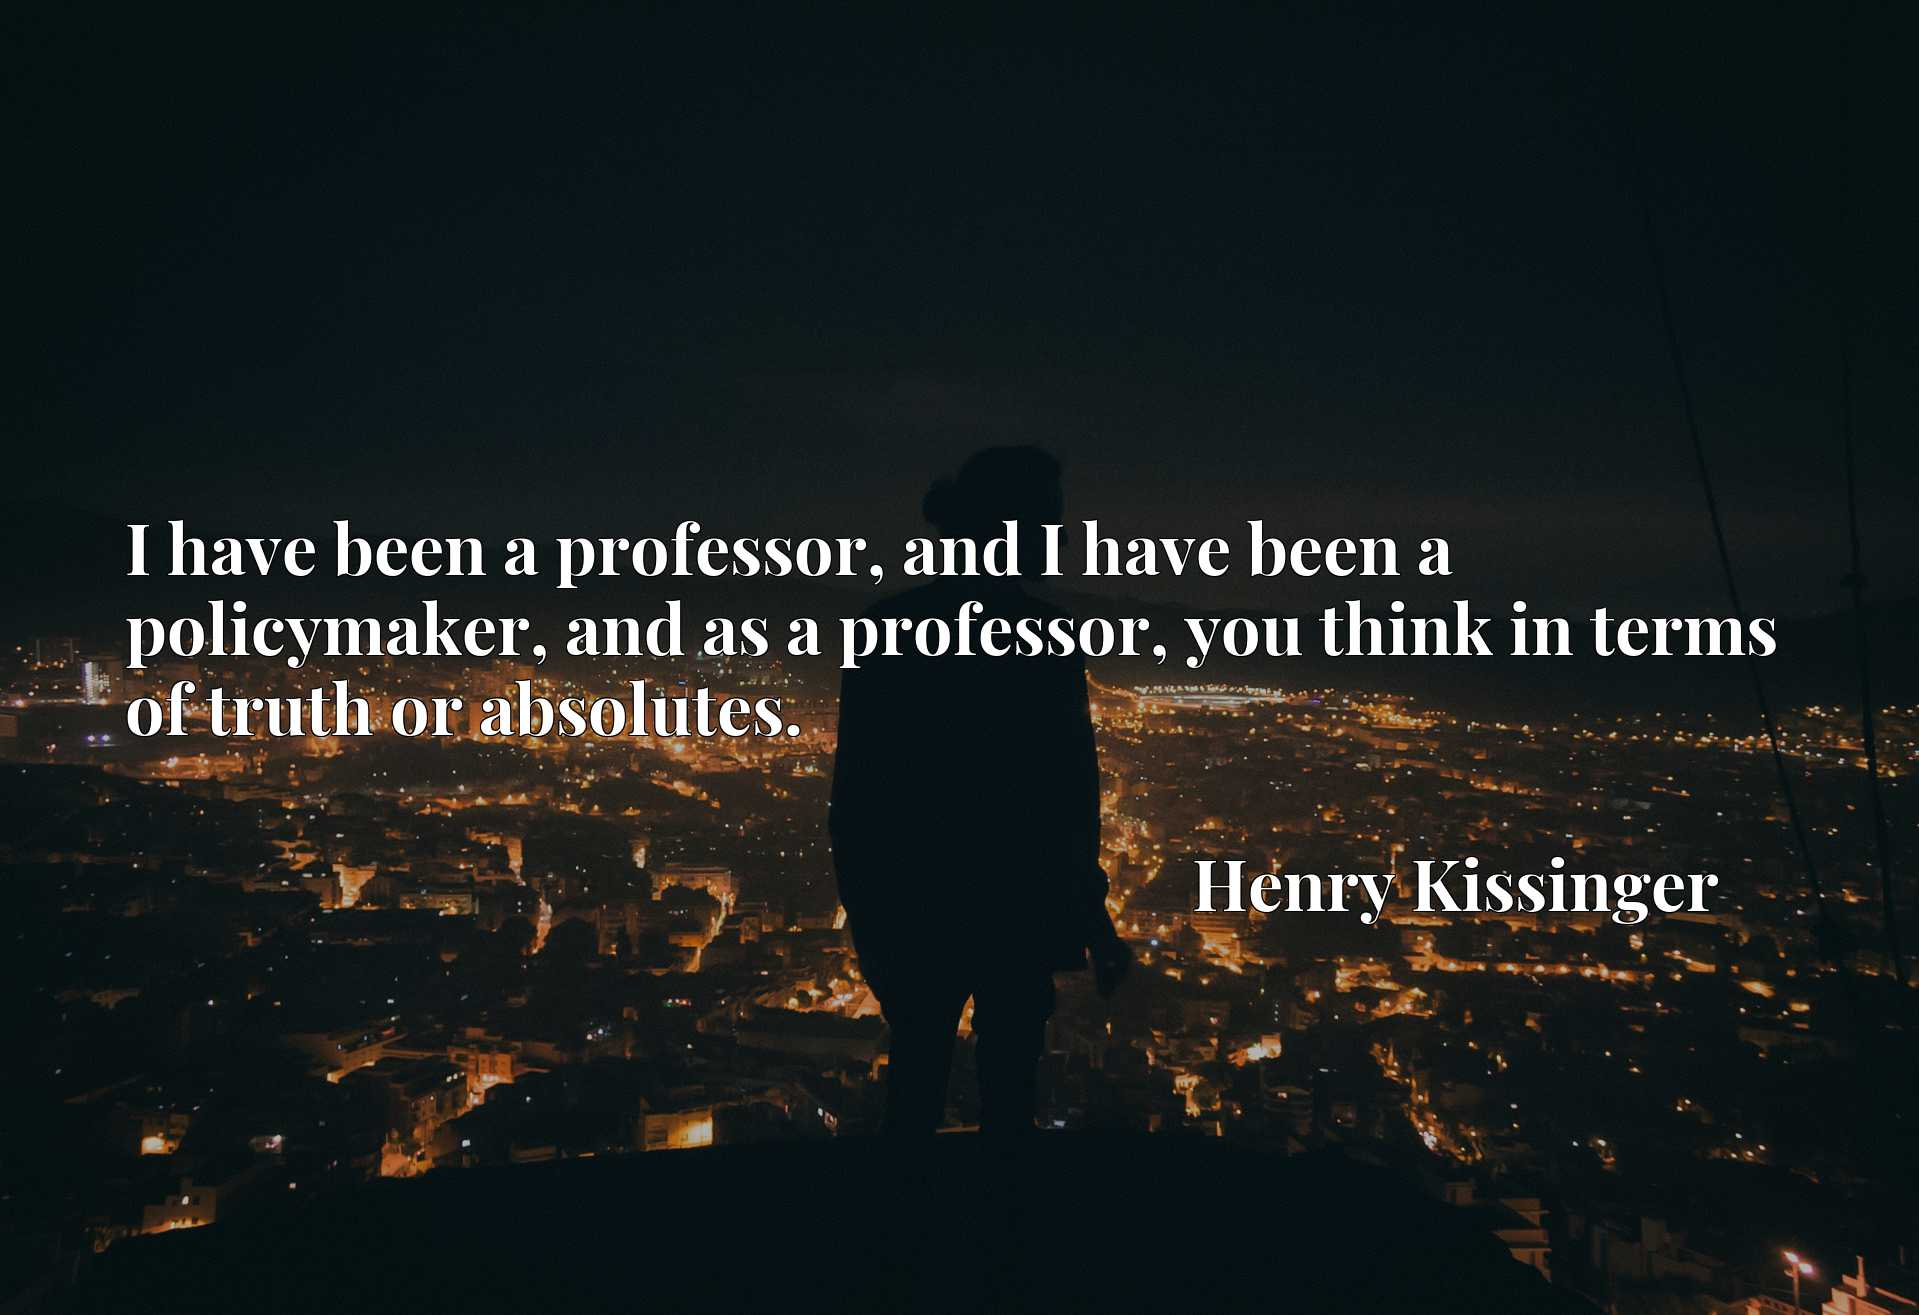 I have been a professor, and I have been a policymaker, and as a professor, you think in terms of truth or absolutes.